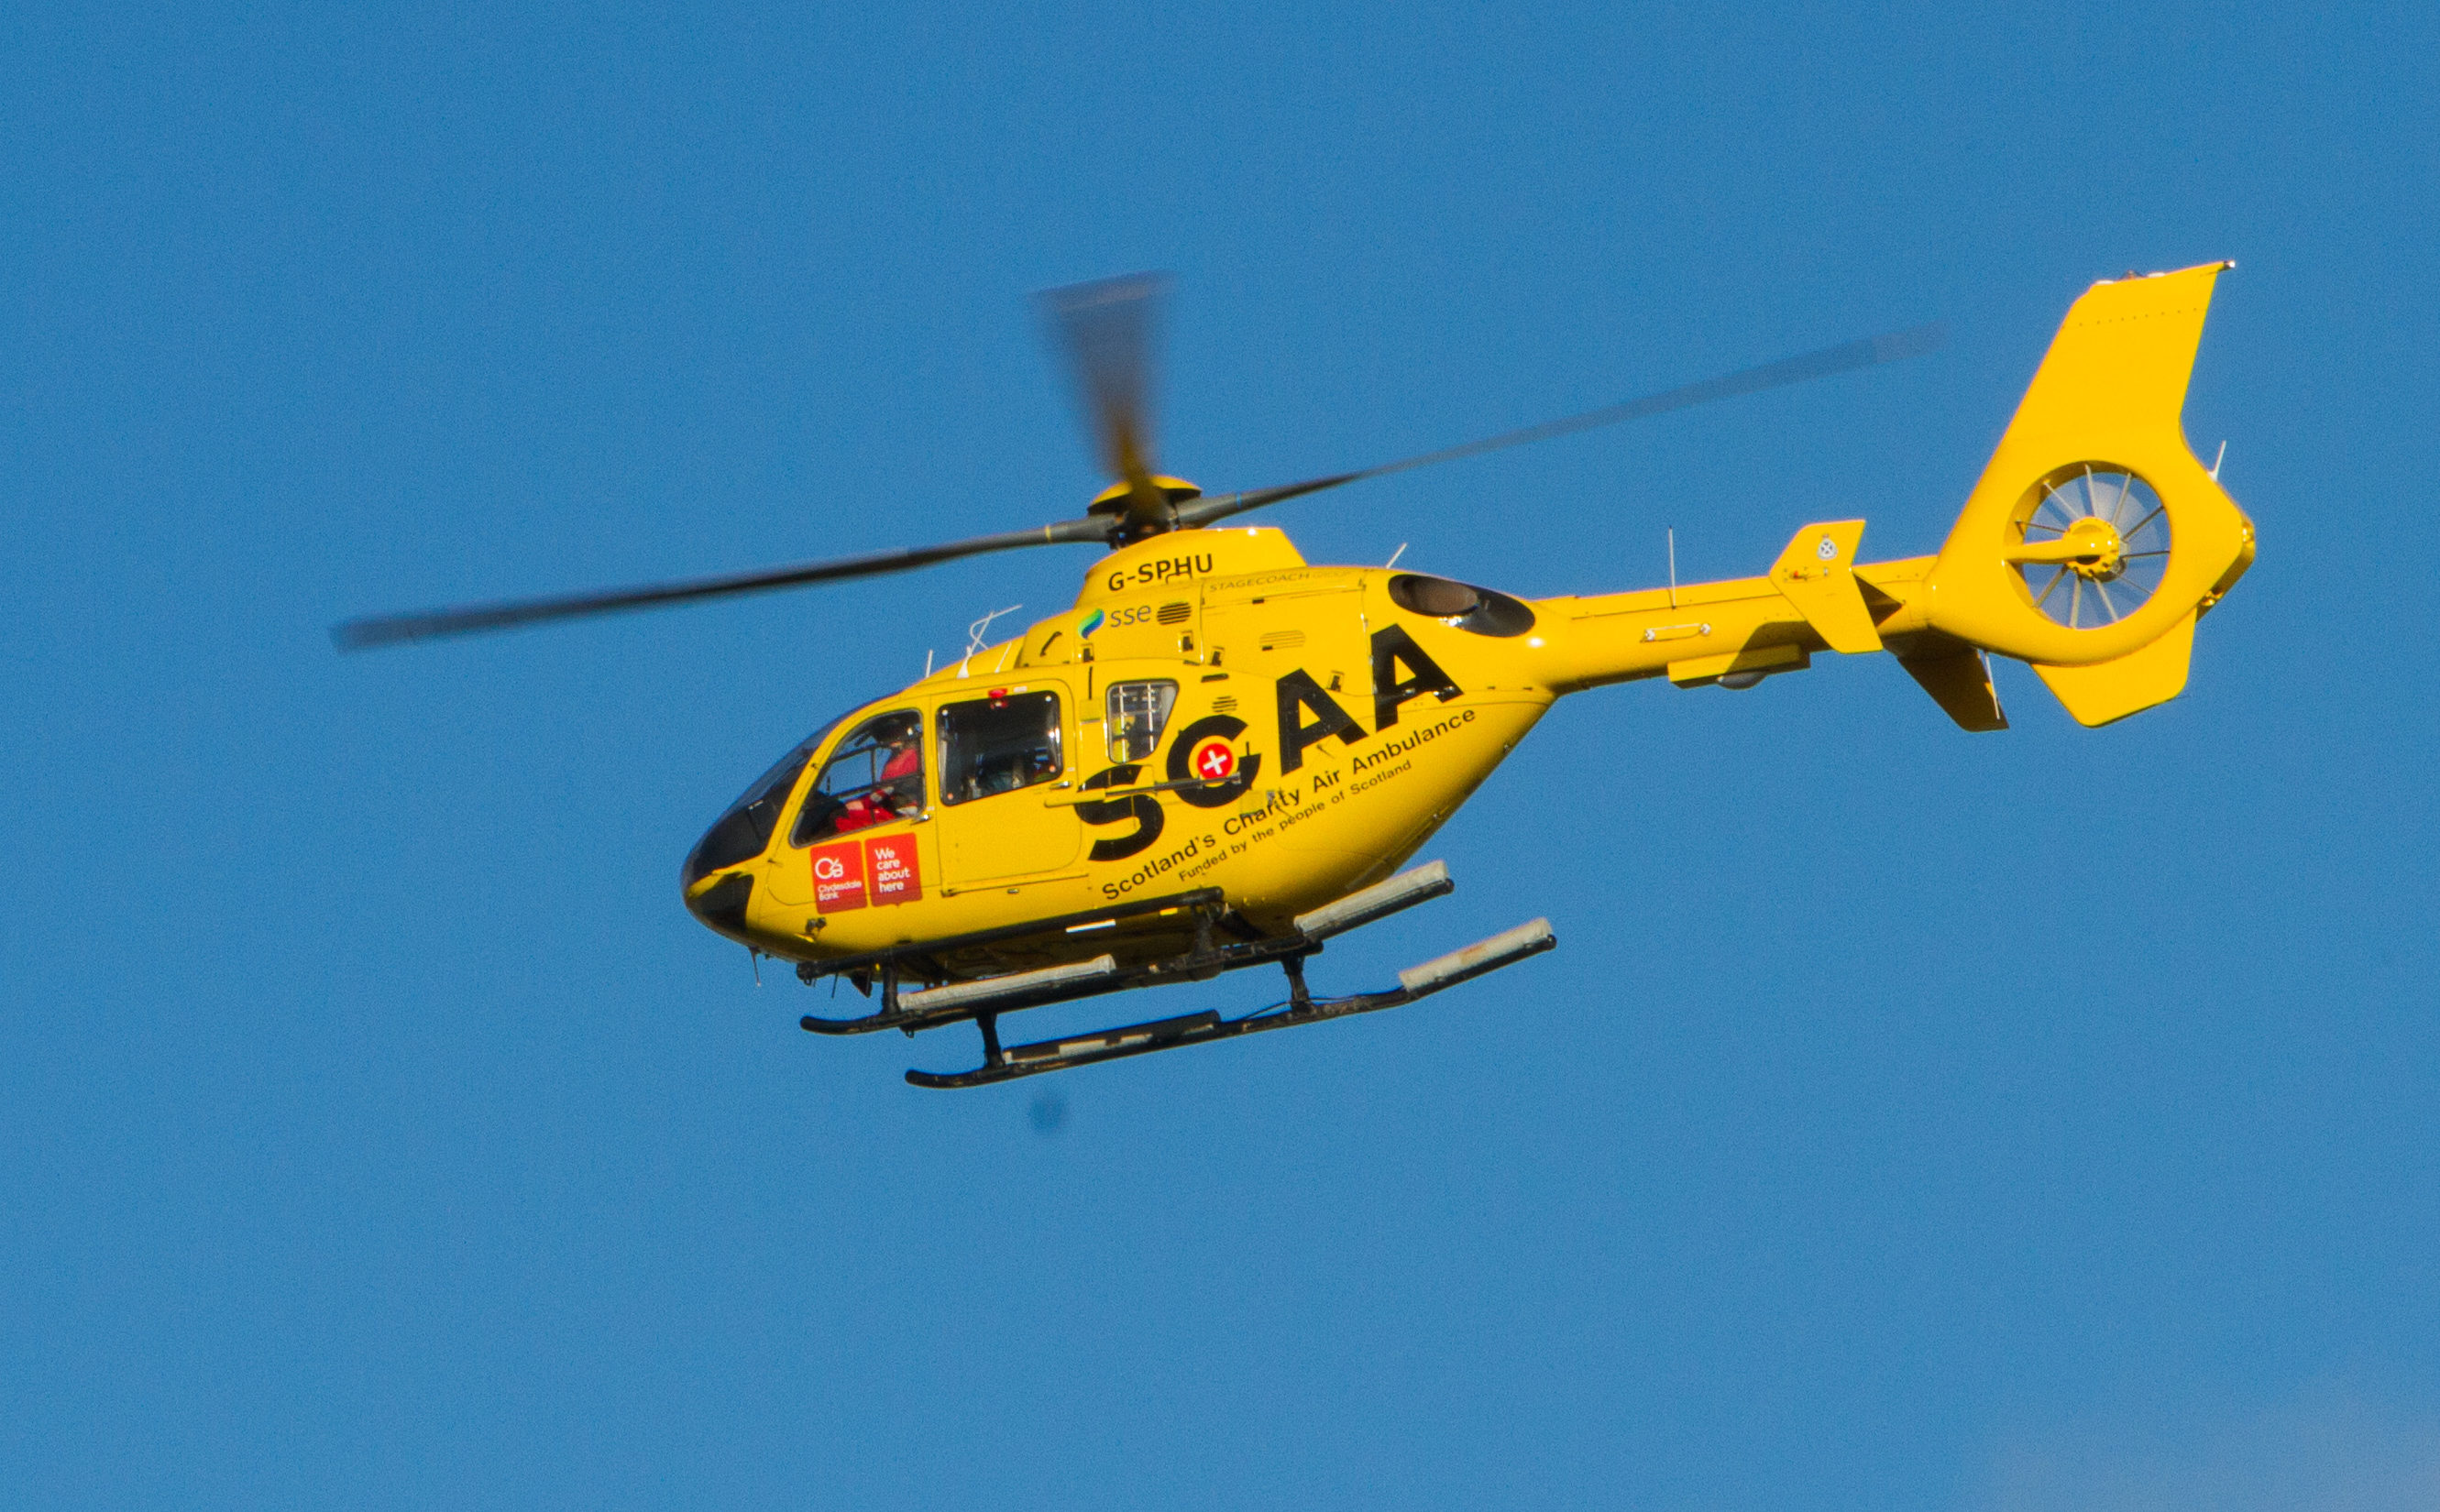 Scotland's Charity Air Ambulance (Steve MacDougall / DC Thomson)